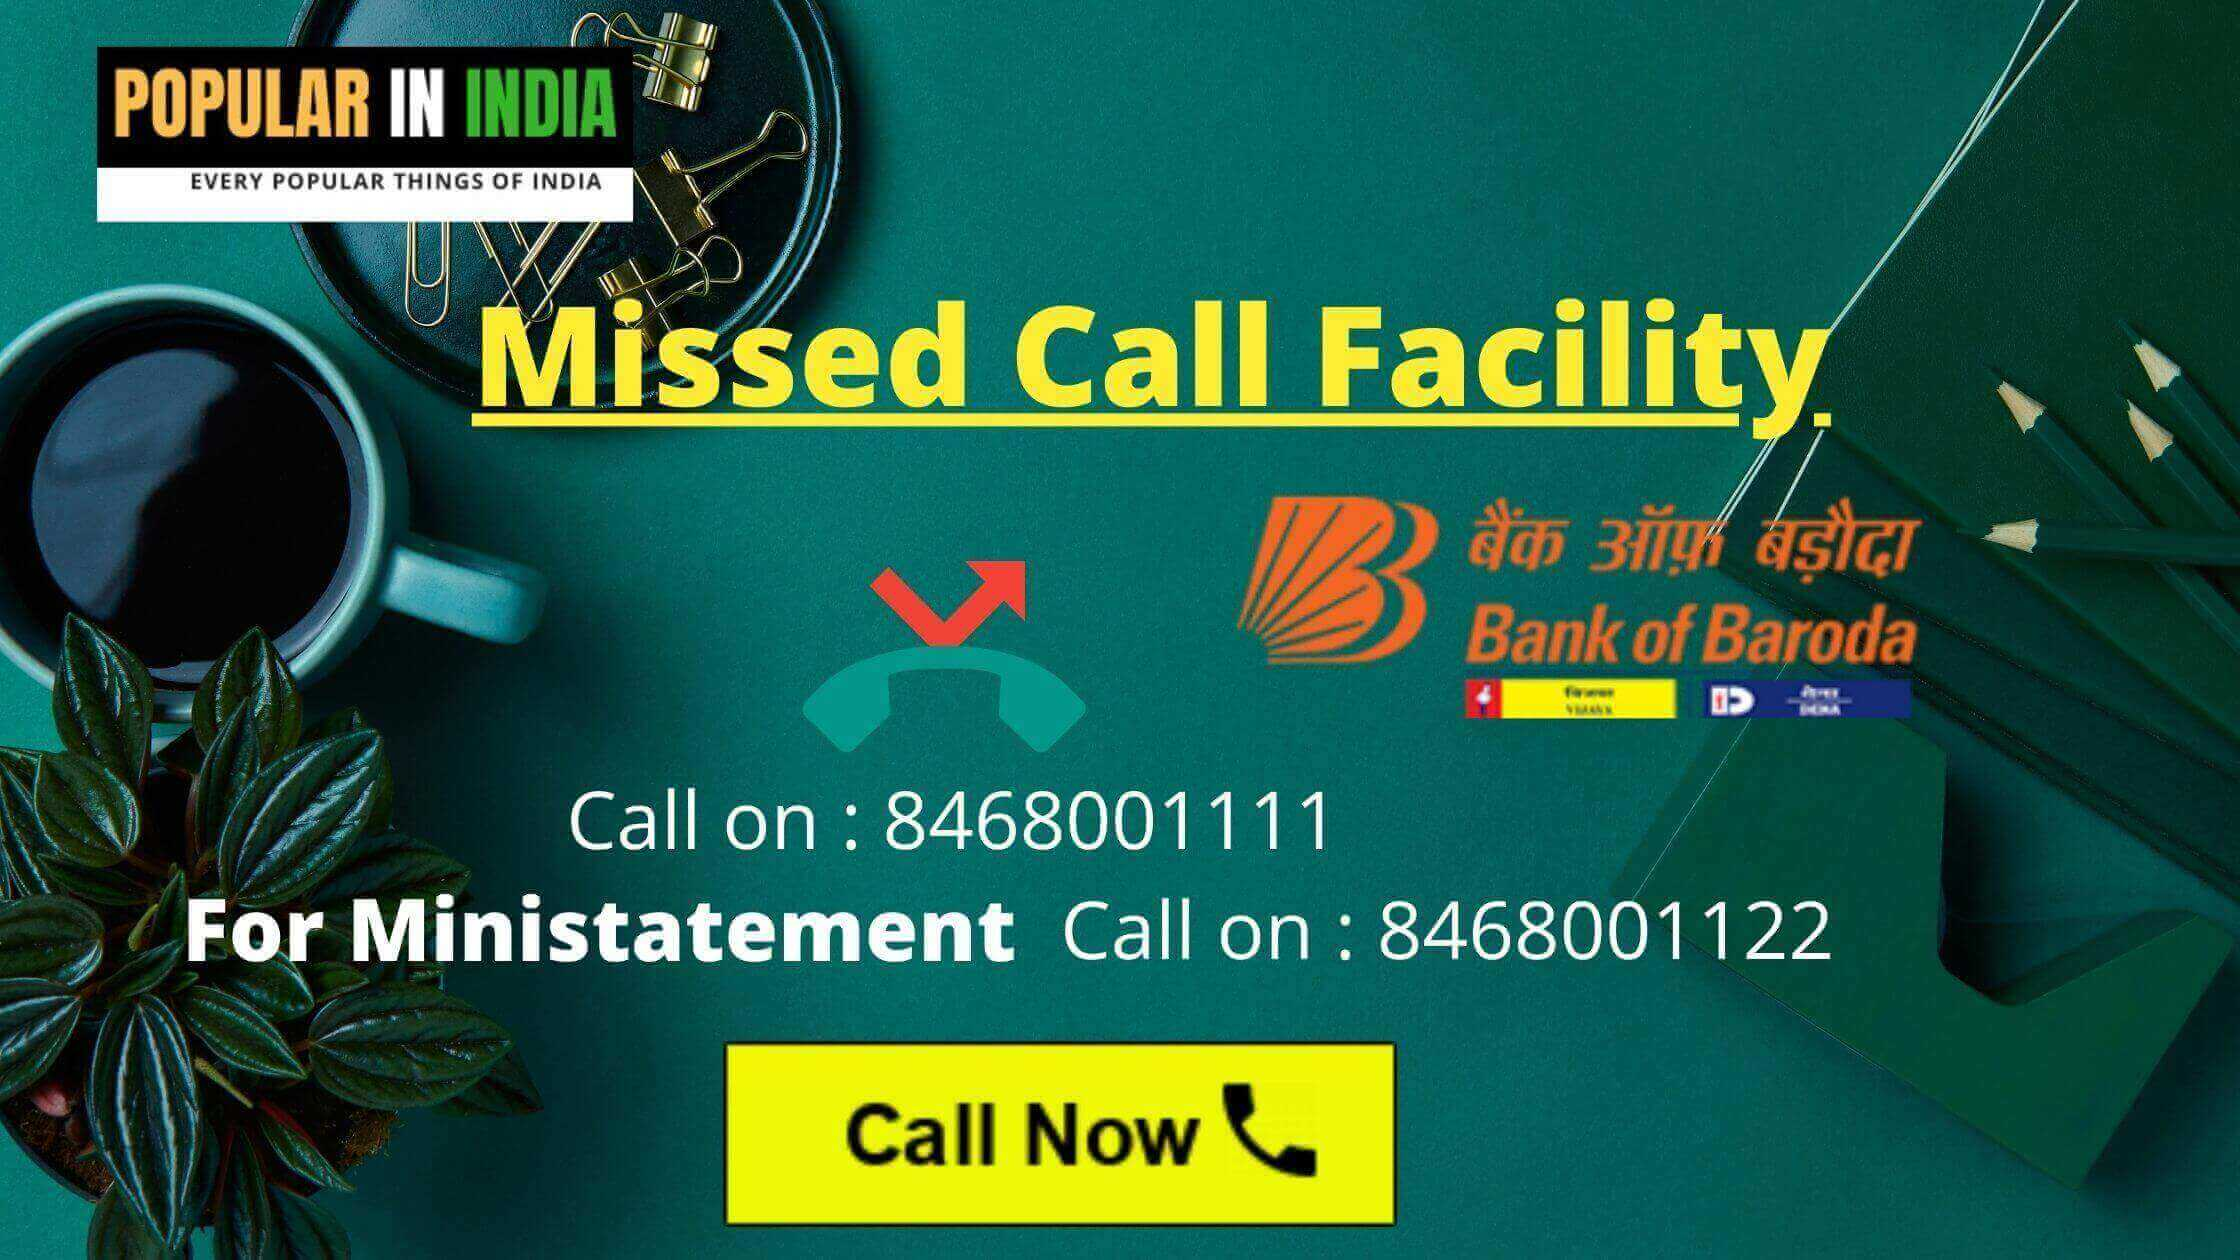 Missed Call Facility to Know Jan Dhan Bank Account